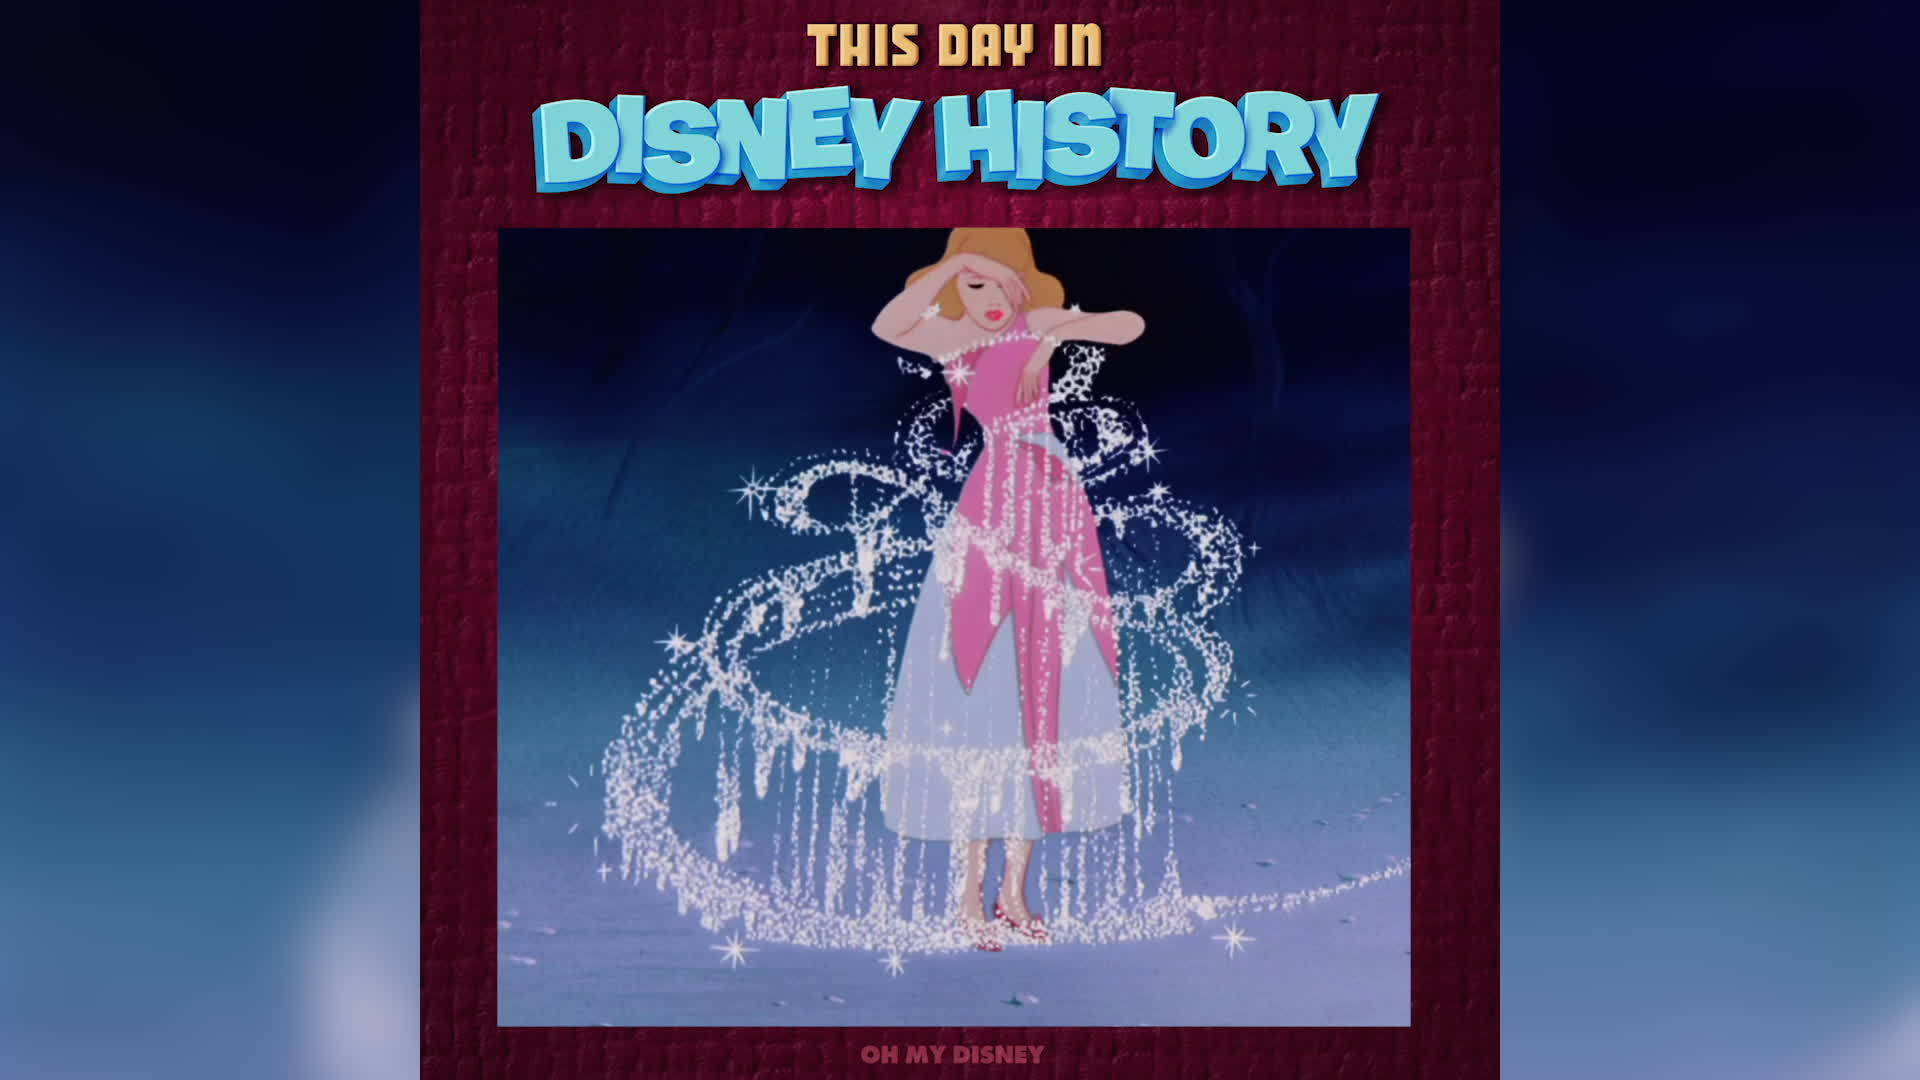 Cinderella | This Day in Disney History by Oh My Disney